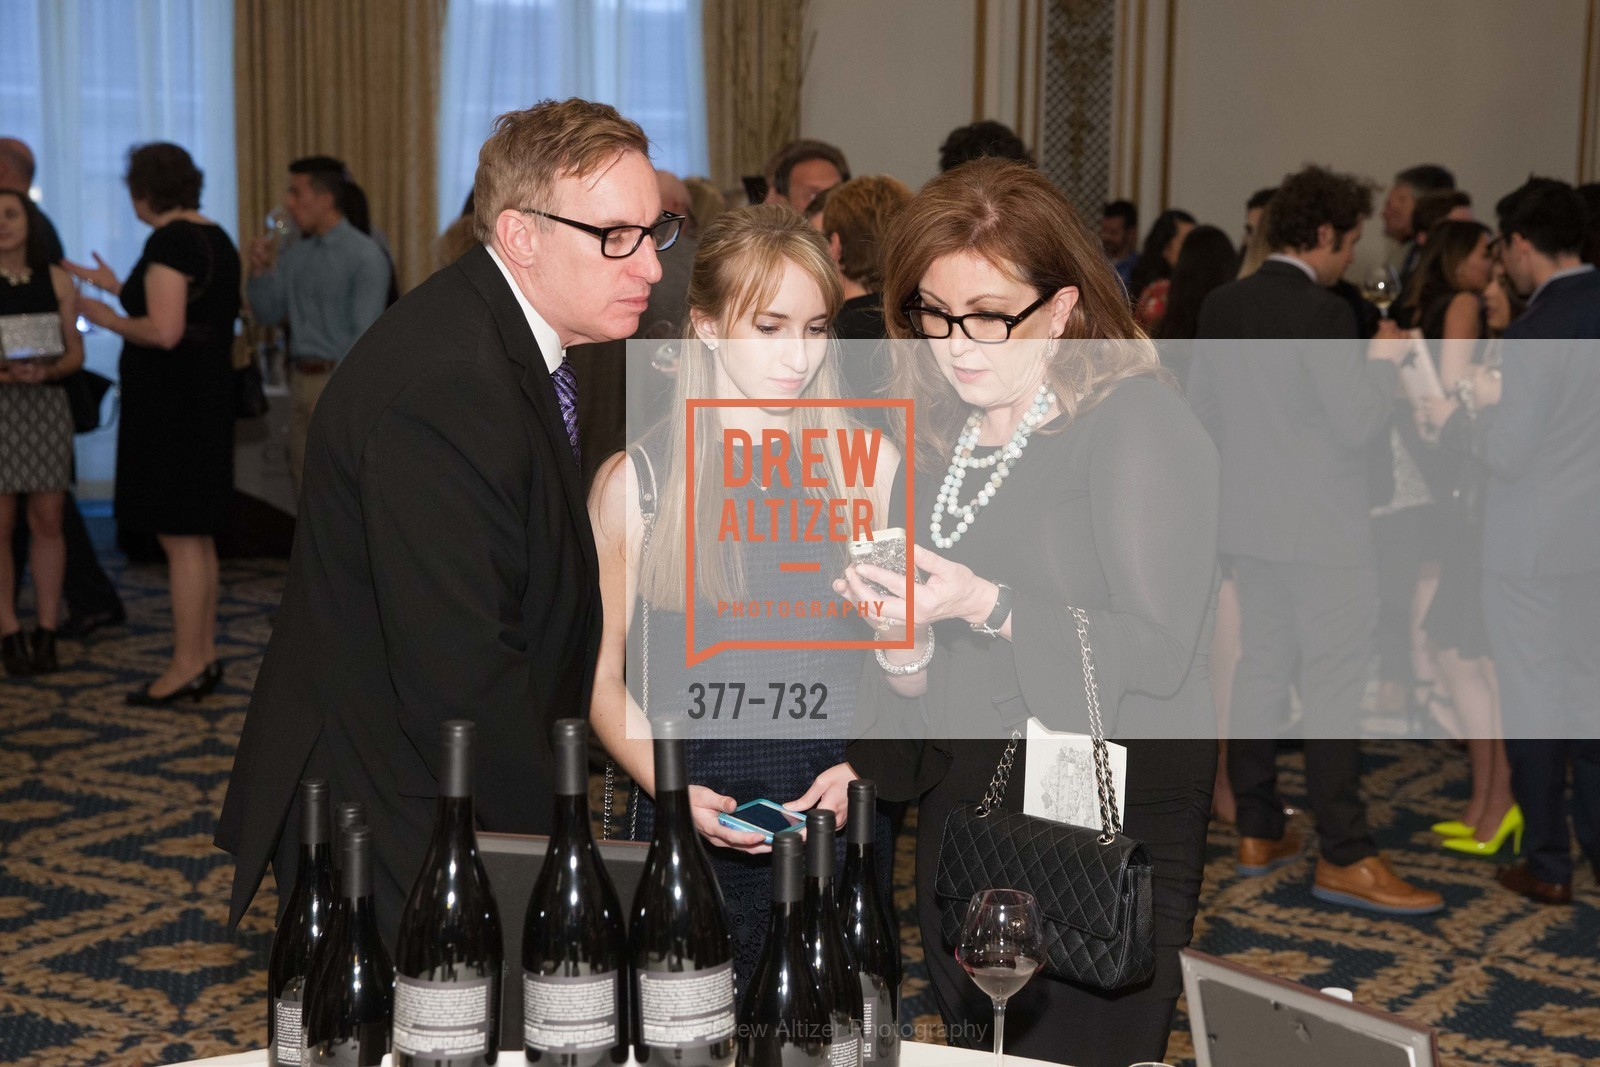 Extras, CROHN'S AND COLITIS FOUNDATION'S 18th Annual California Wine Classic, May 16th, 2015, Photo,Drew Altizer, Drew Altizer Photography, full-service agency, private events, San Francisco photographer, photographer california